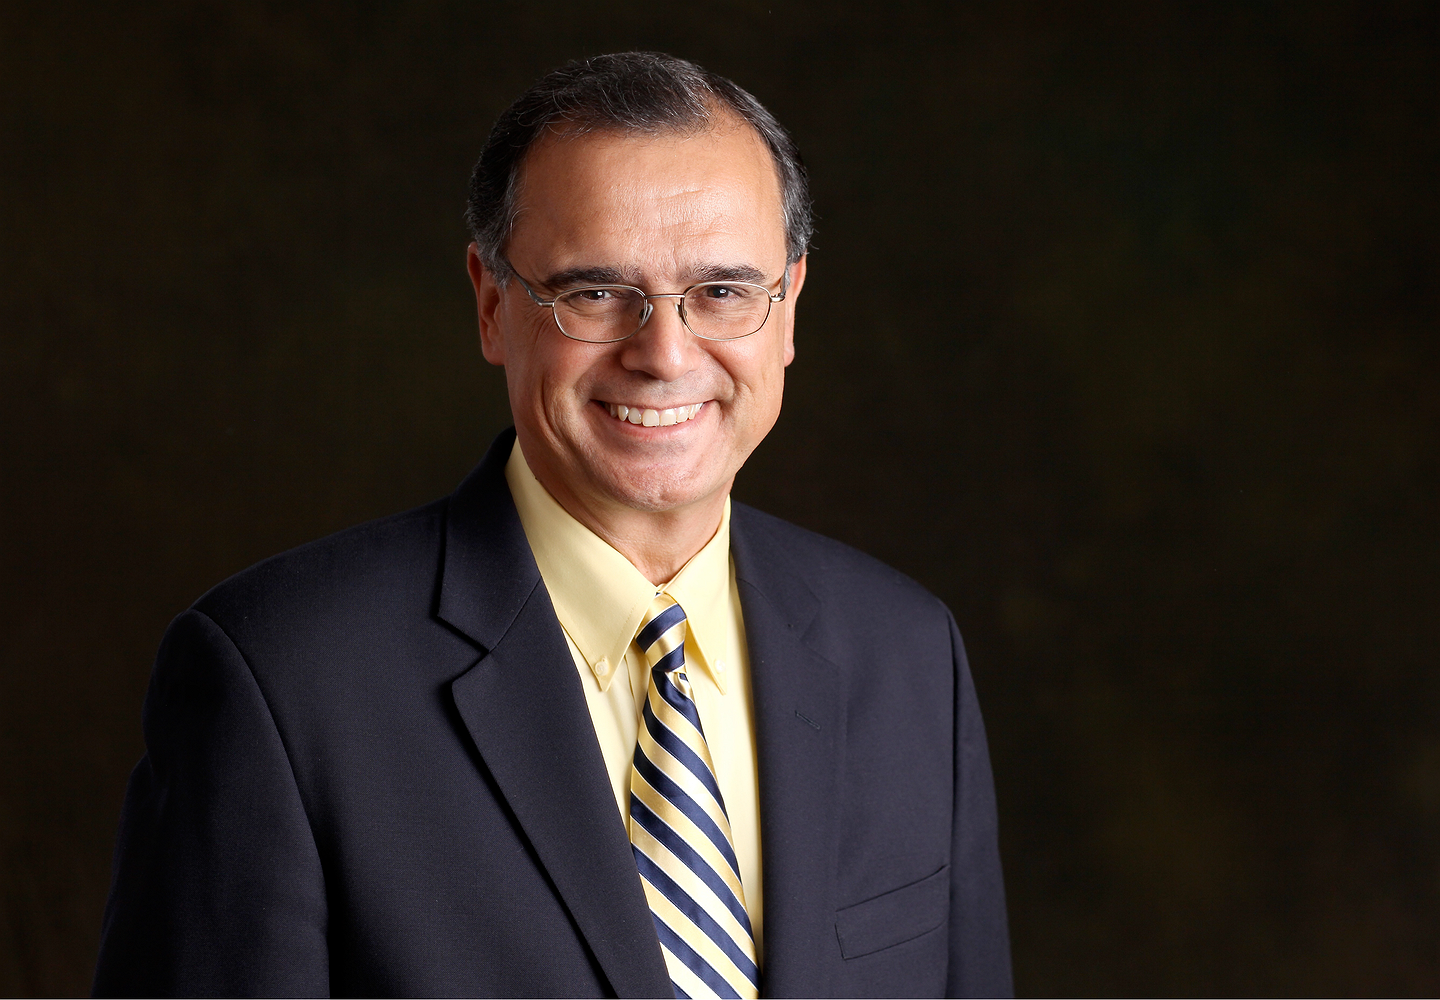 Advancing Diversity Inductee:  ANA CEO Bob Liodice